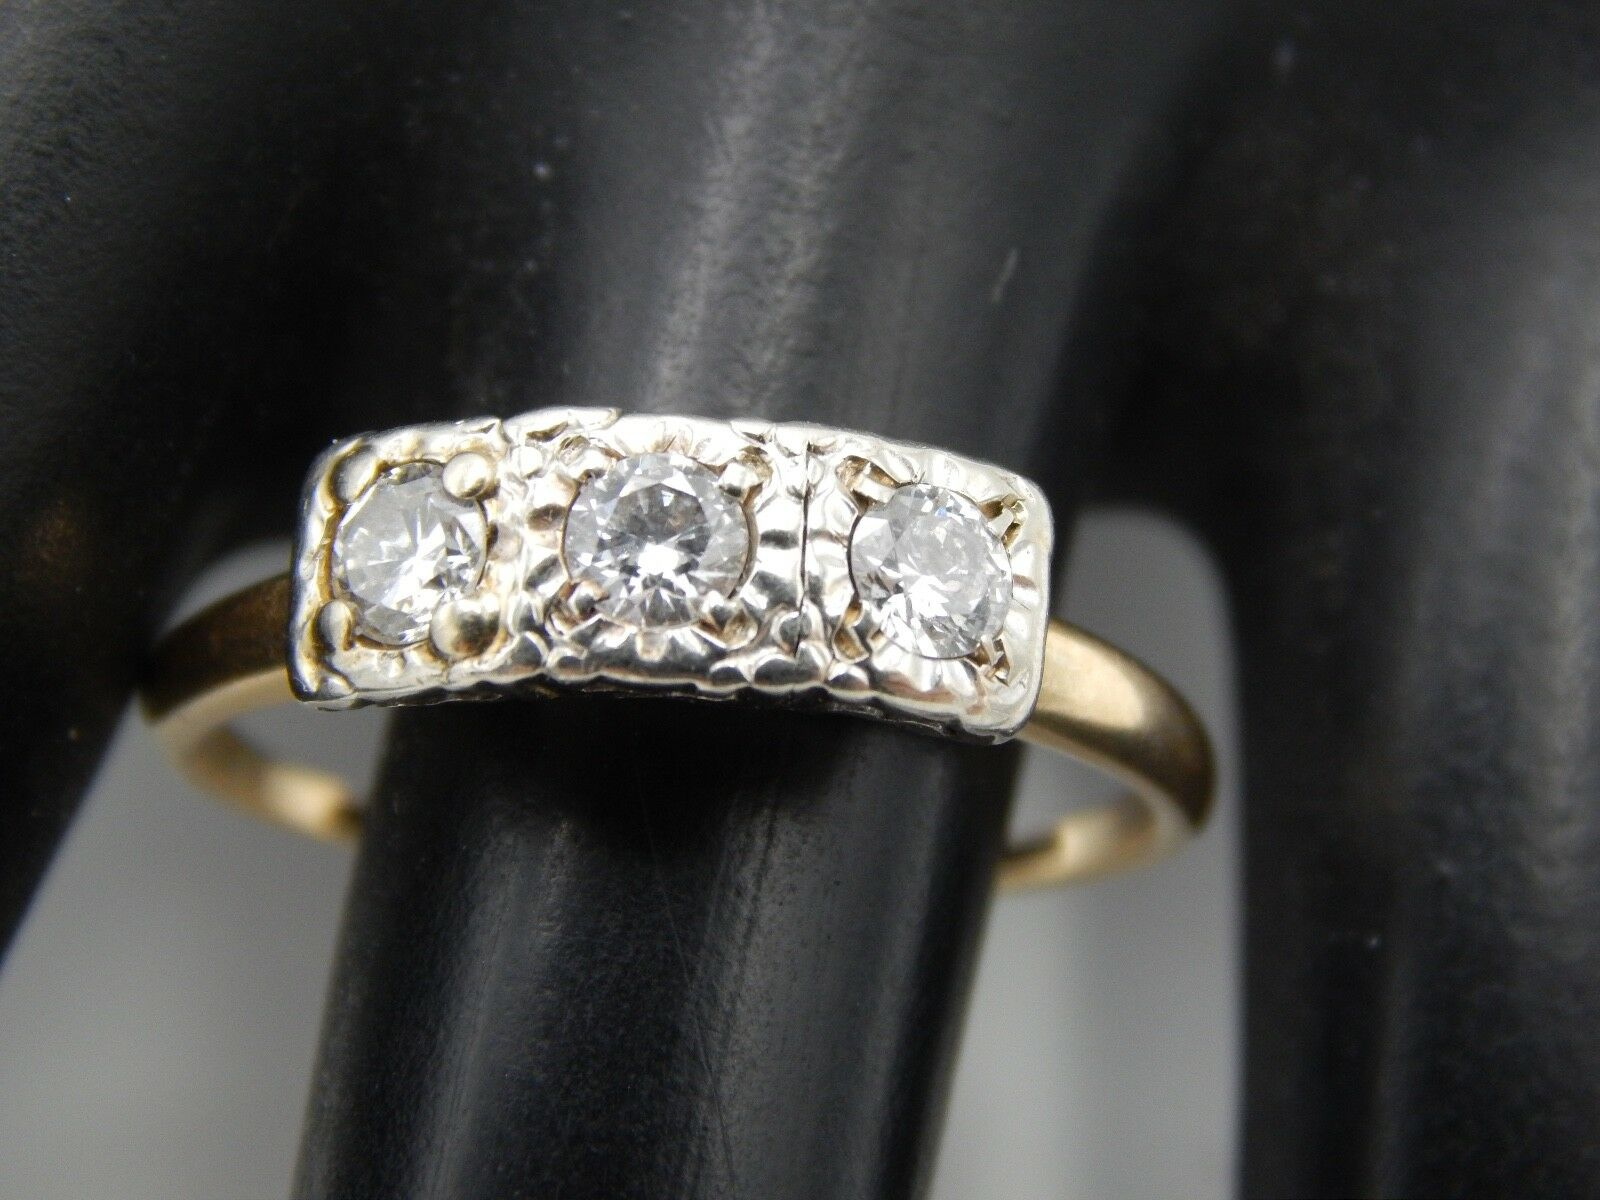 ART DECO Handmade  3-stone Transitional Cut Diamond Ring .55 ct G VS 14k Estate